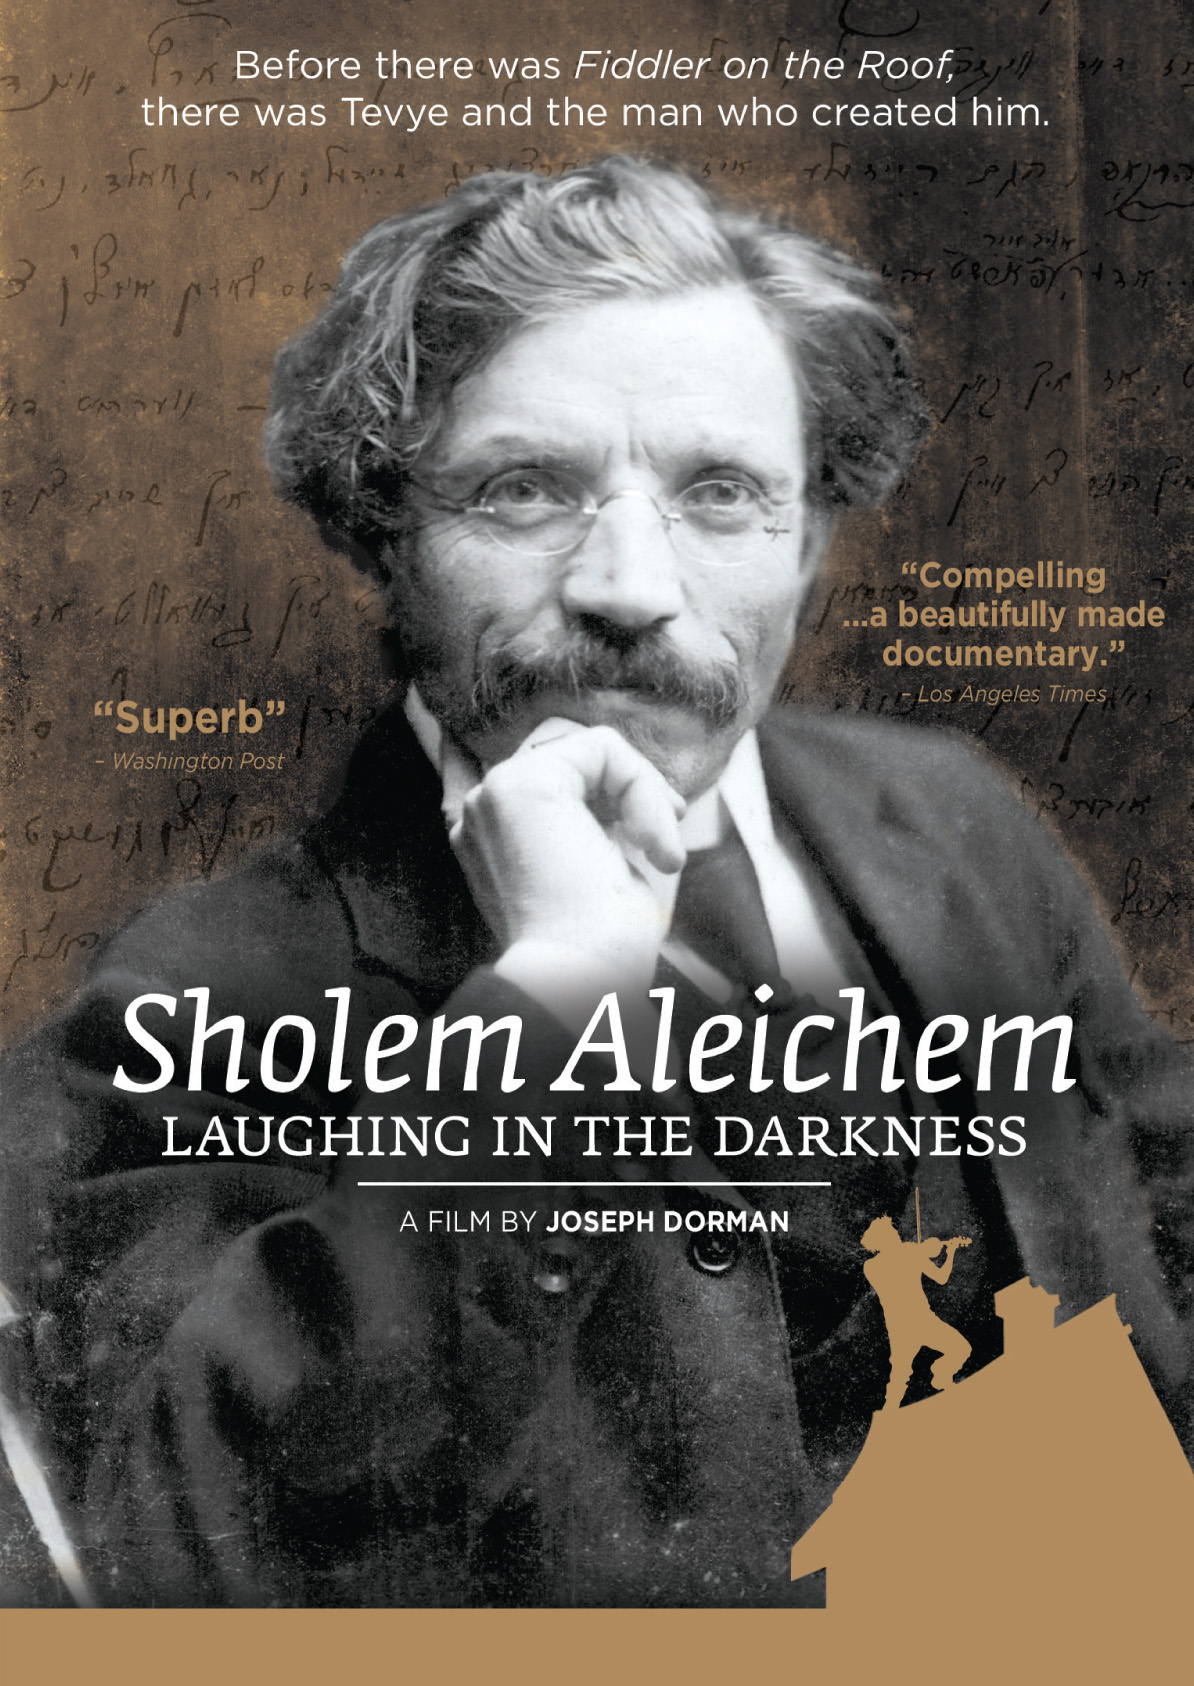 Sholem Aleichem Laughing In The Darkness Dvd Review